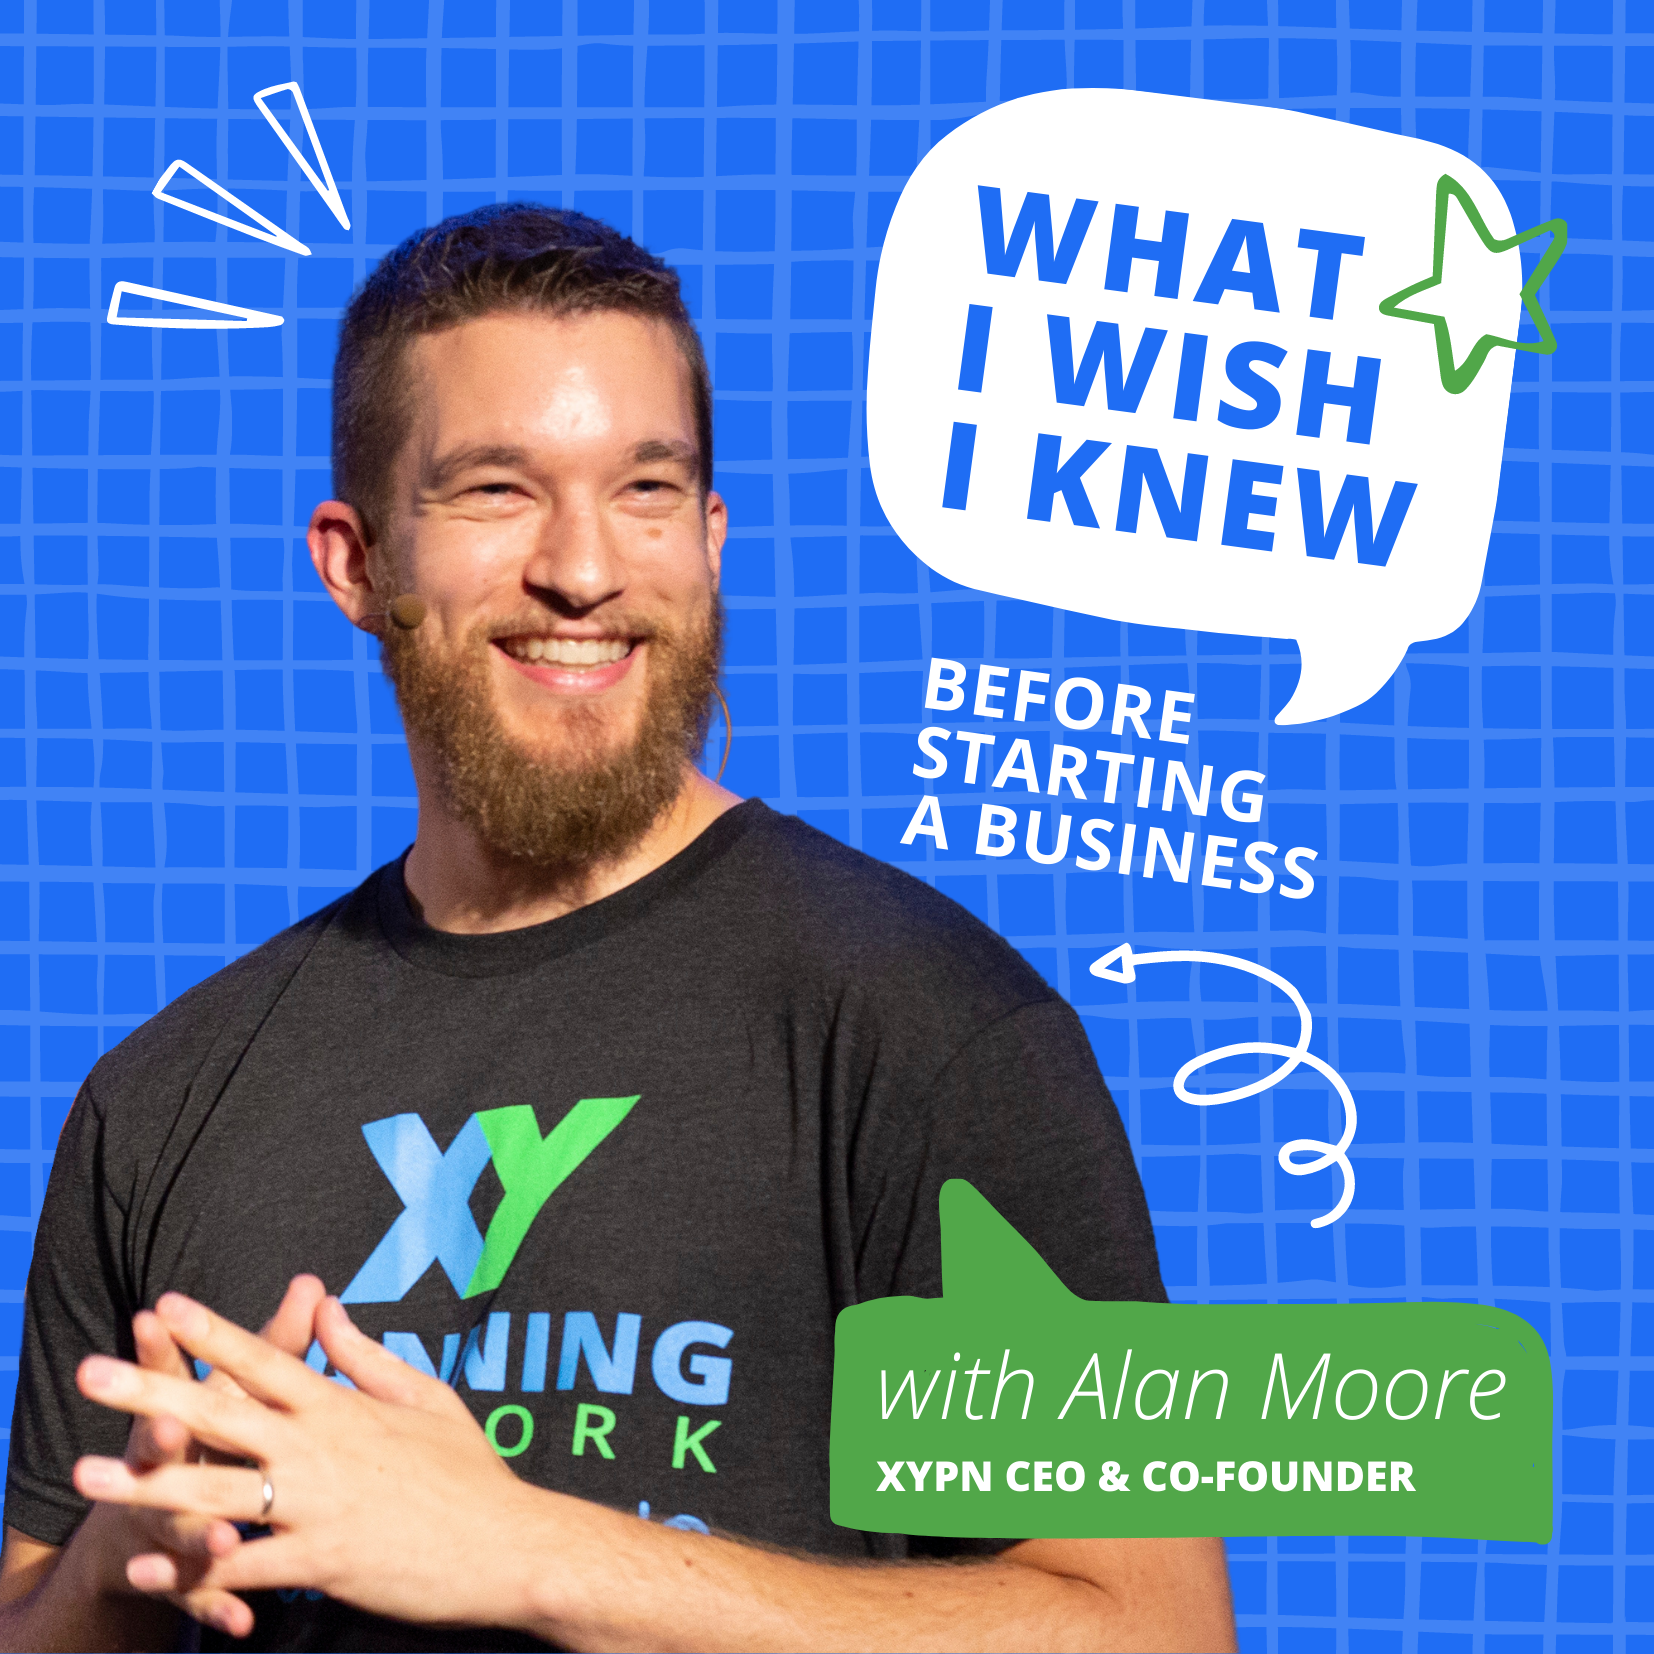 What I Wish I Knew Before Starting a Business webinar thumbnail